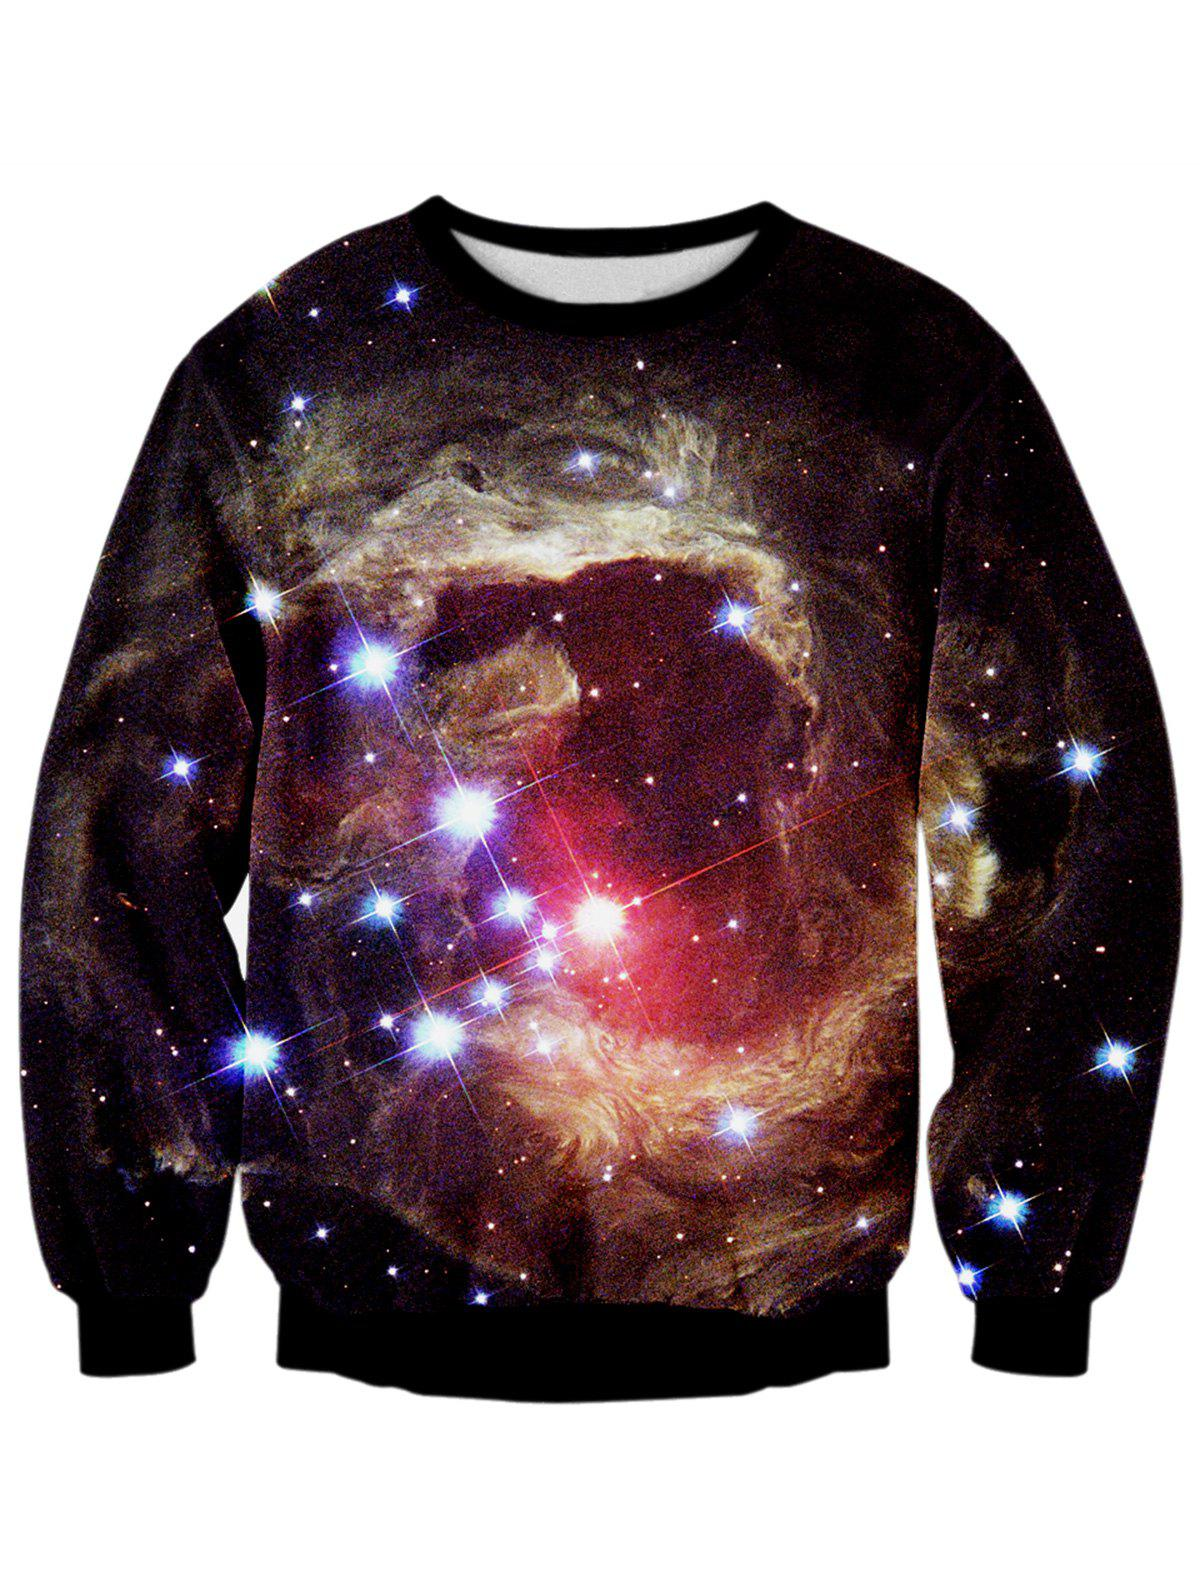 Galaxy 3D Print Starry Sky Sweatshirt sweatshirt with 3d galaxy print